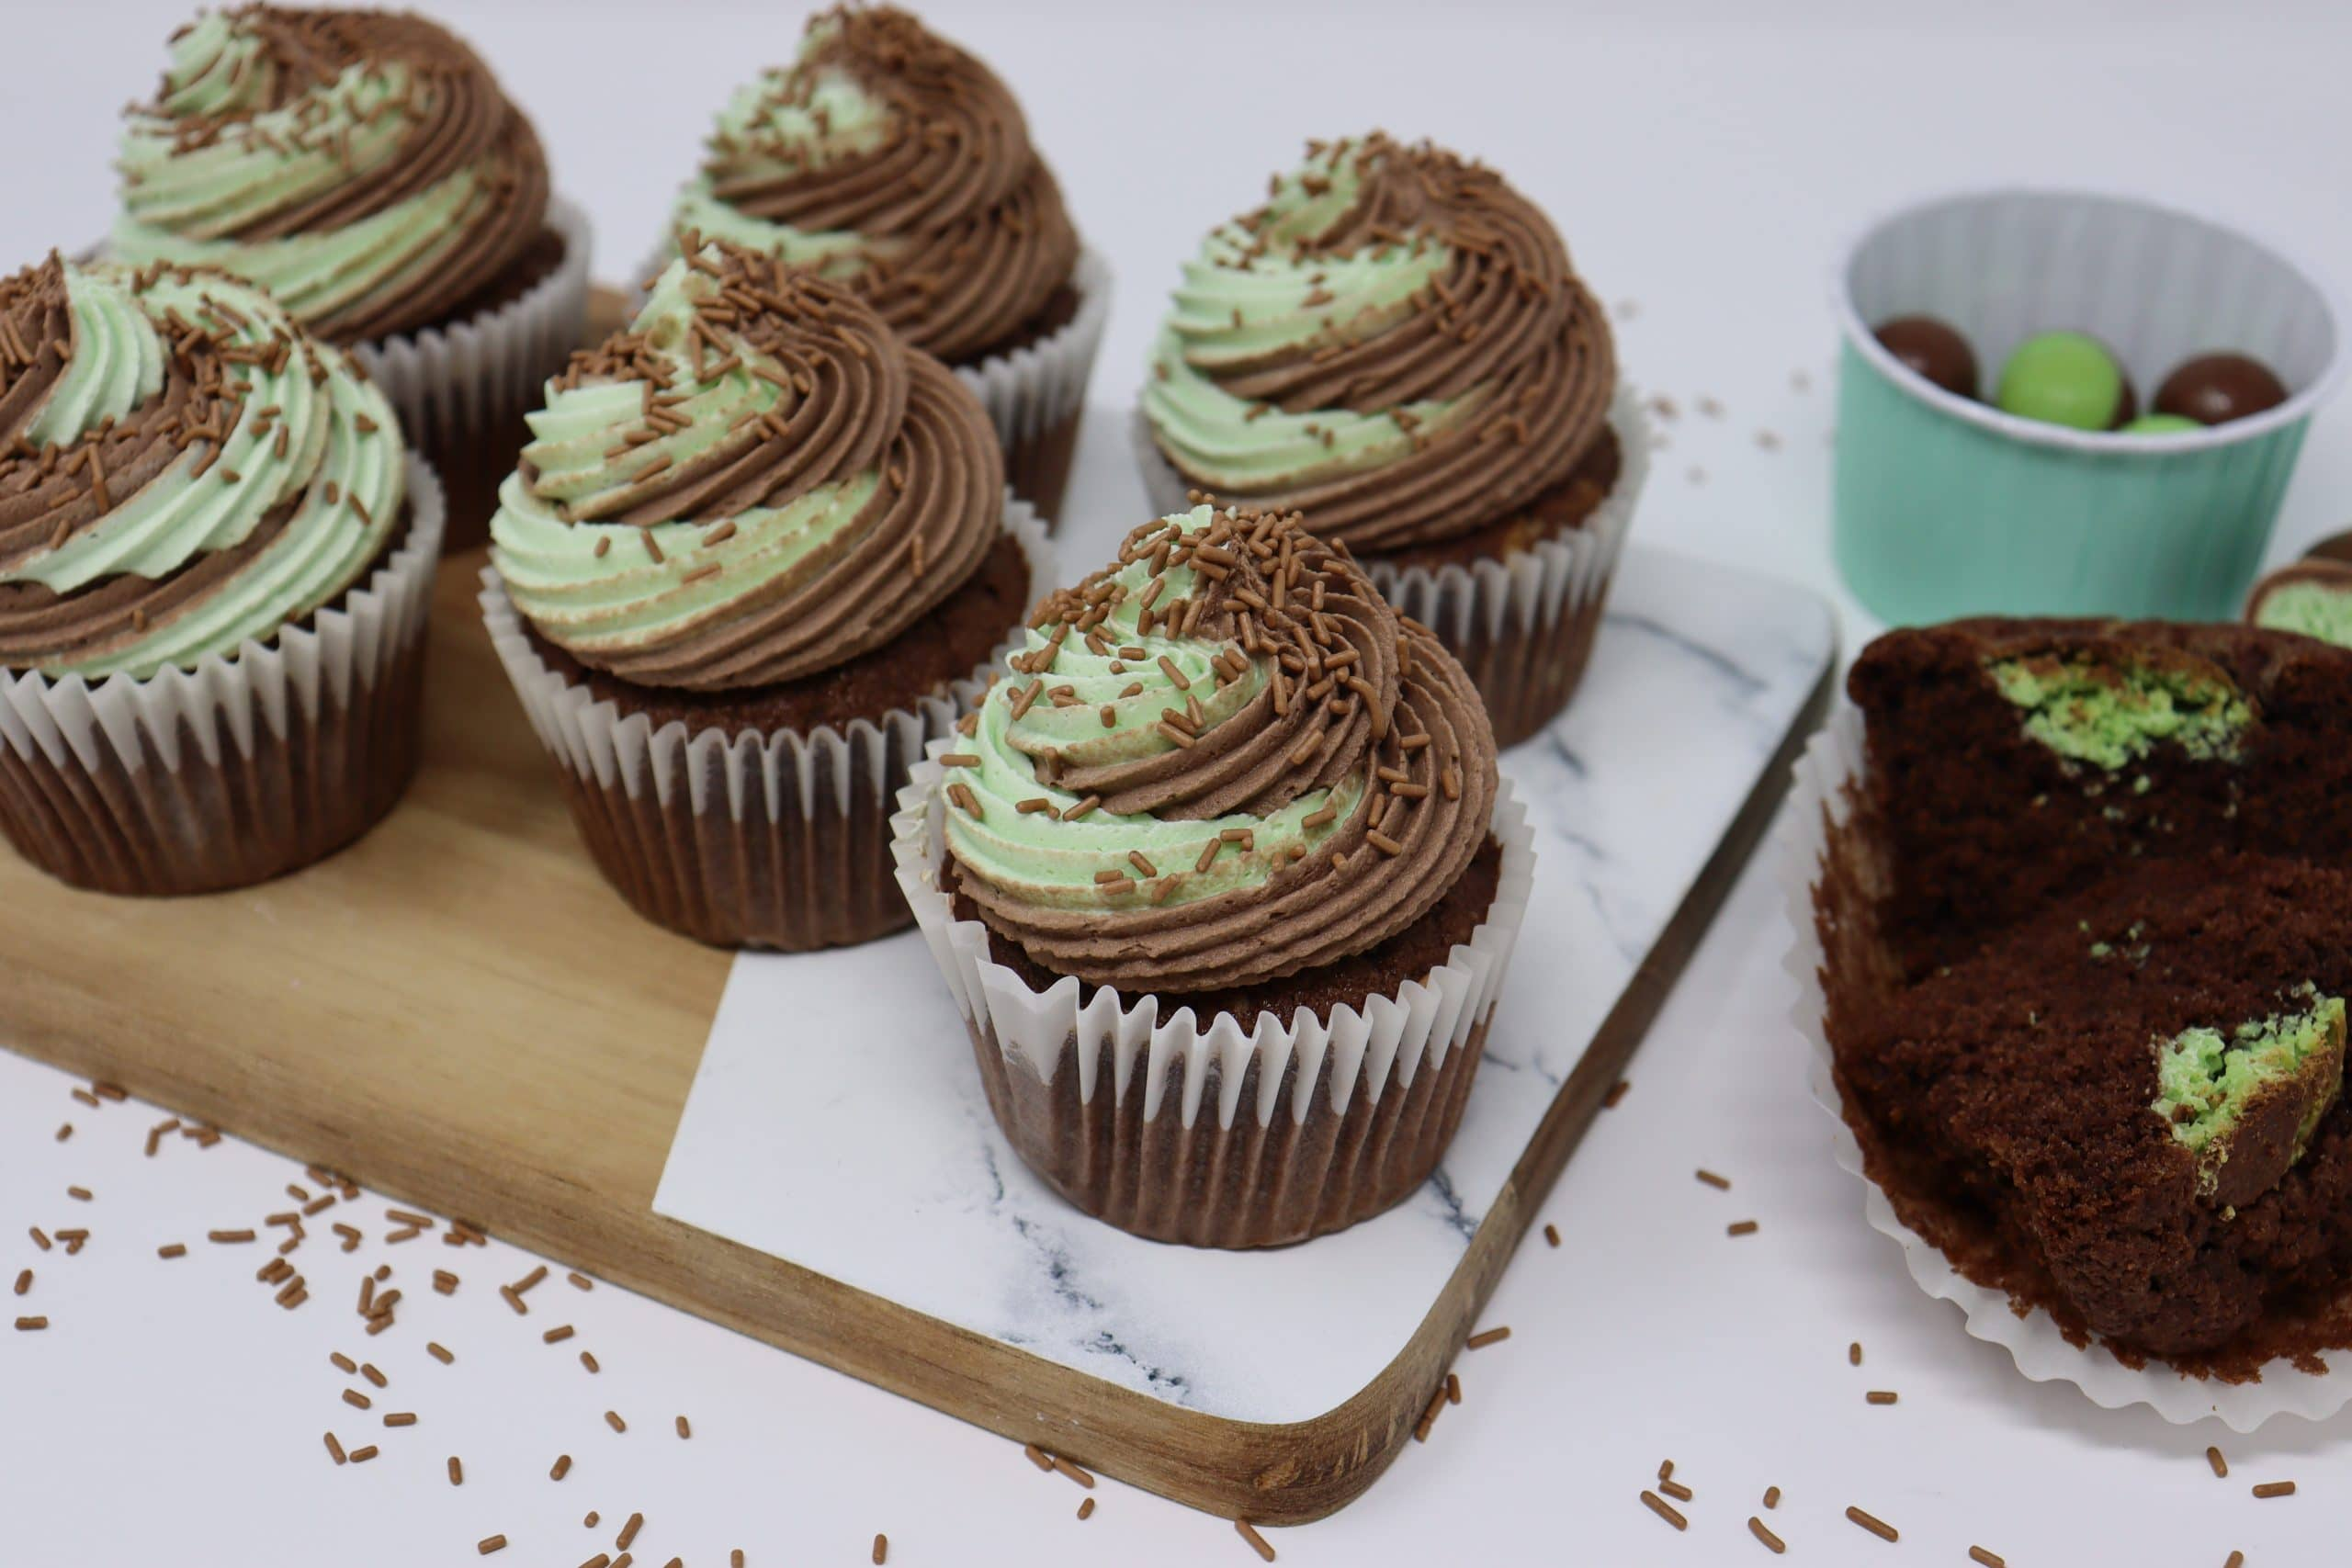 Peppermint and chocolate cupcakes